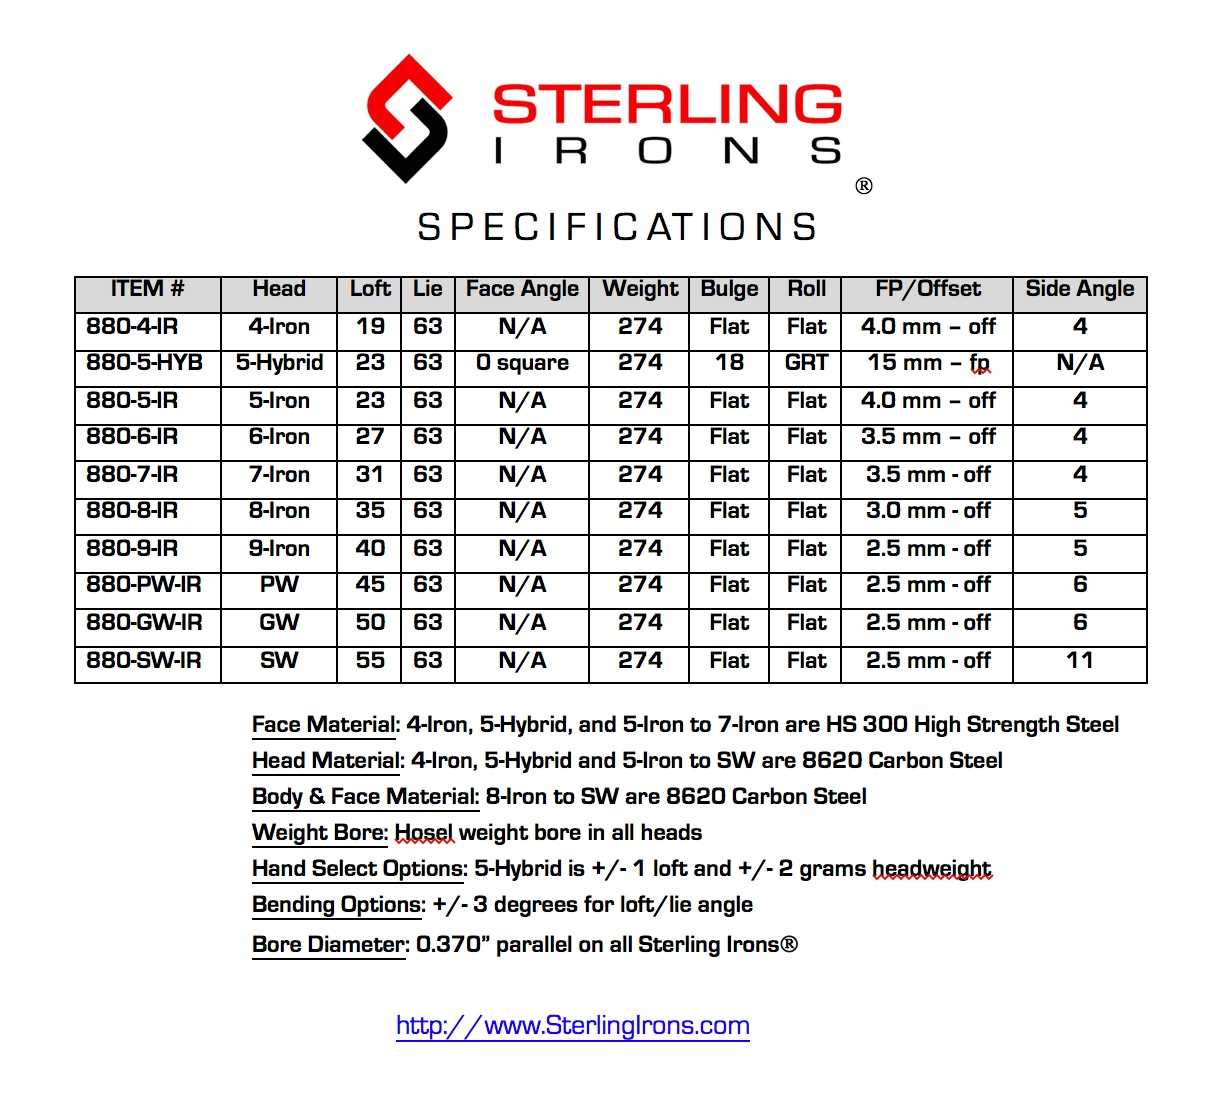 sterling-irons-specifications-june2016